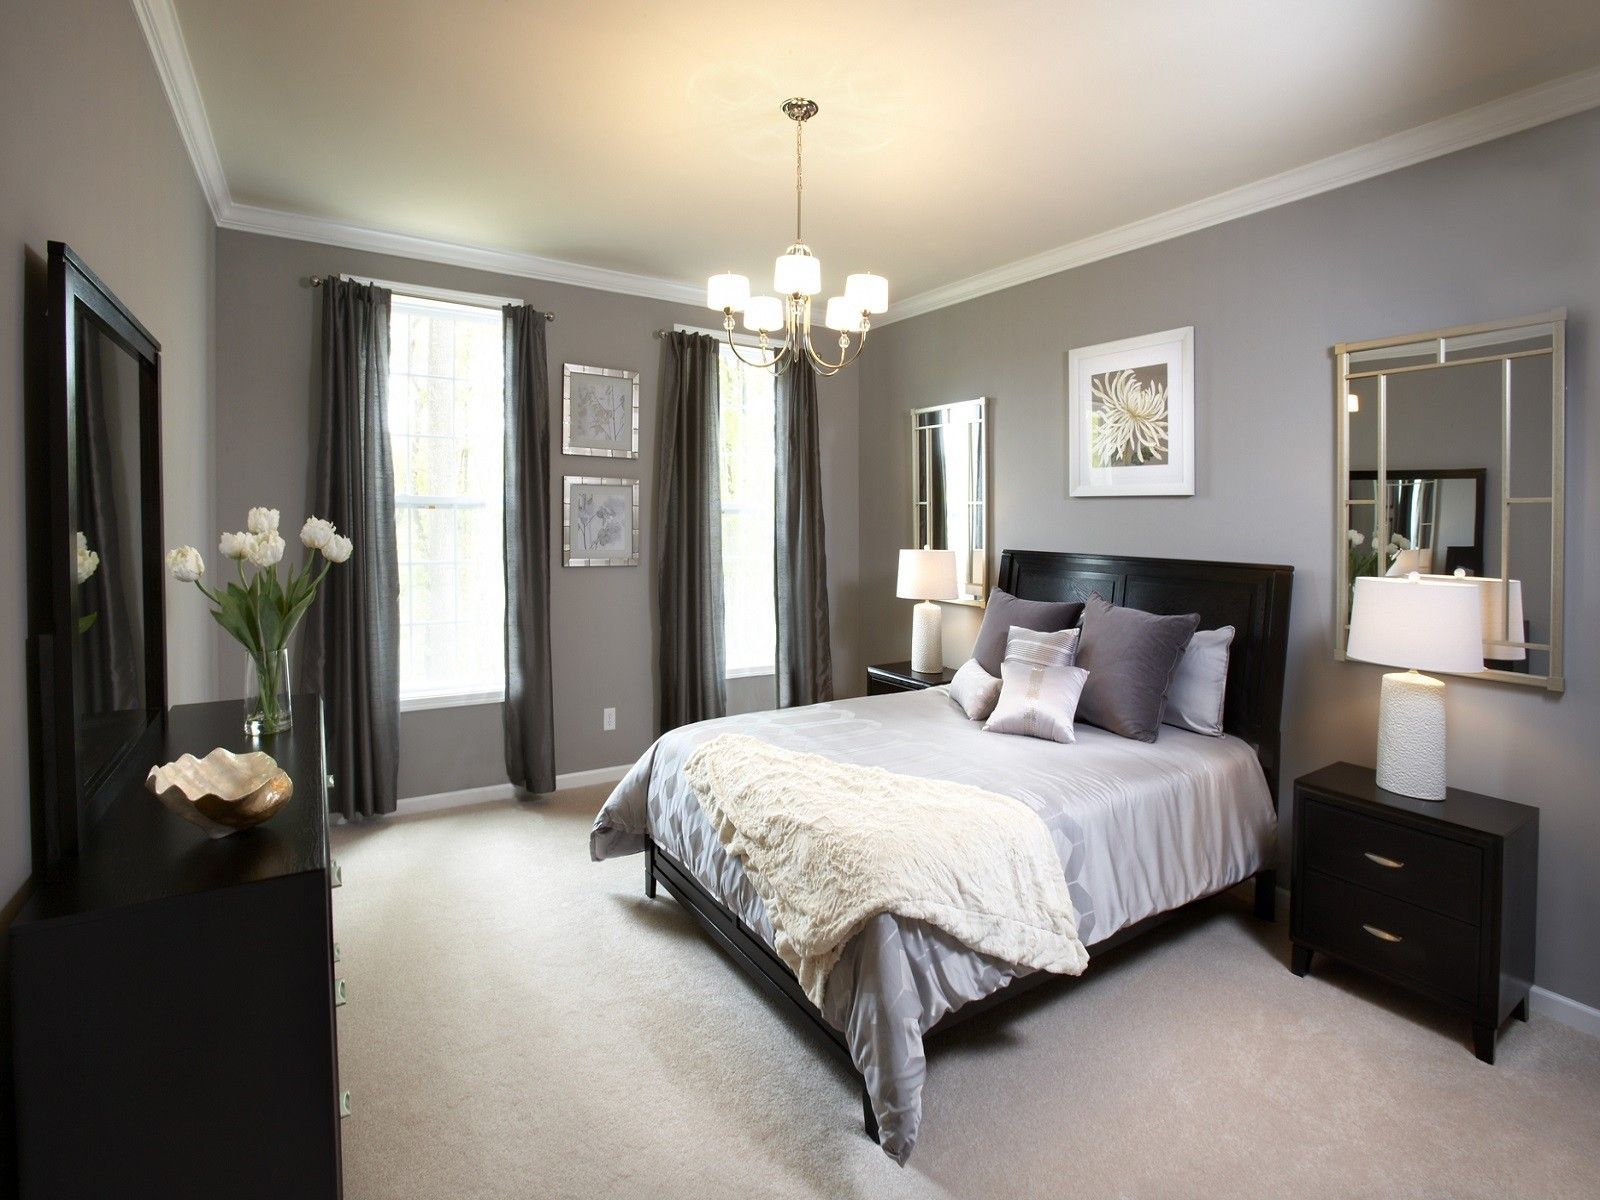 Black Gray Bedroom Google Search Gray Master Bedroom Remodel Bedroom Master Bedrooms Decor